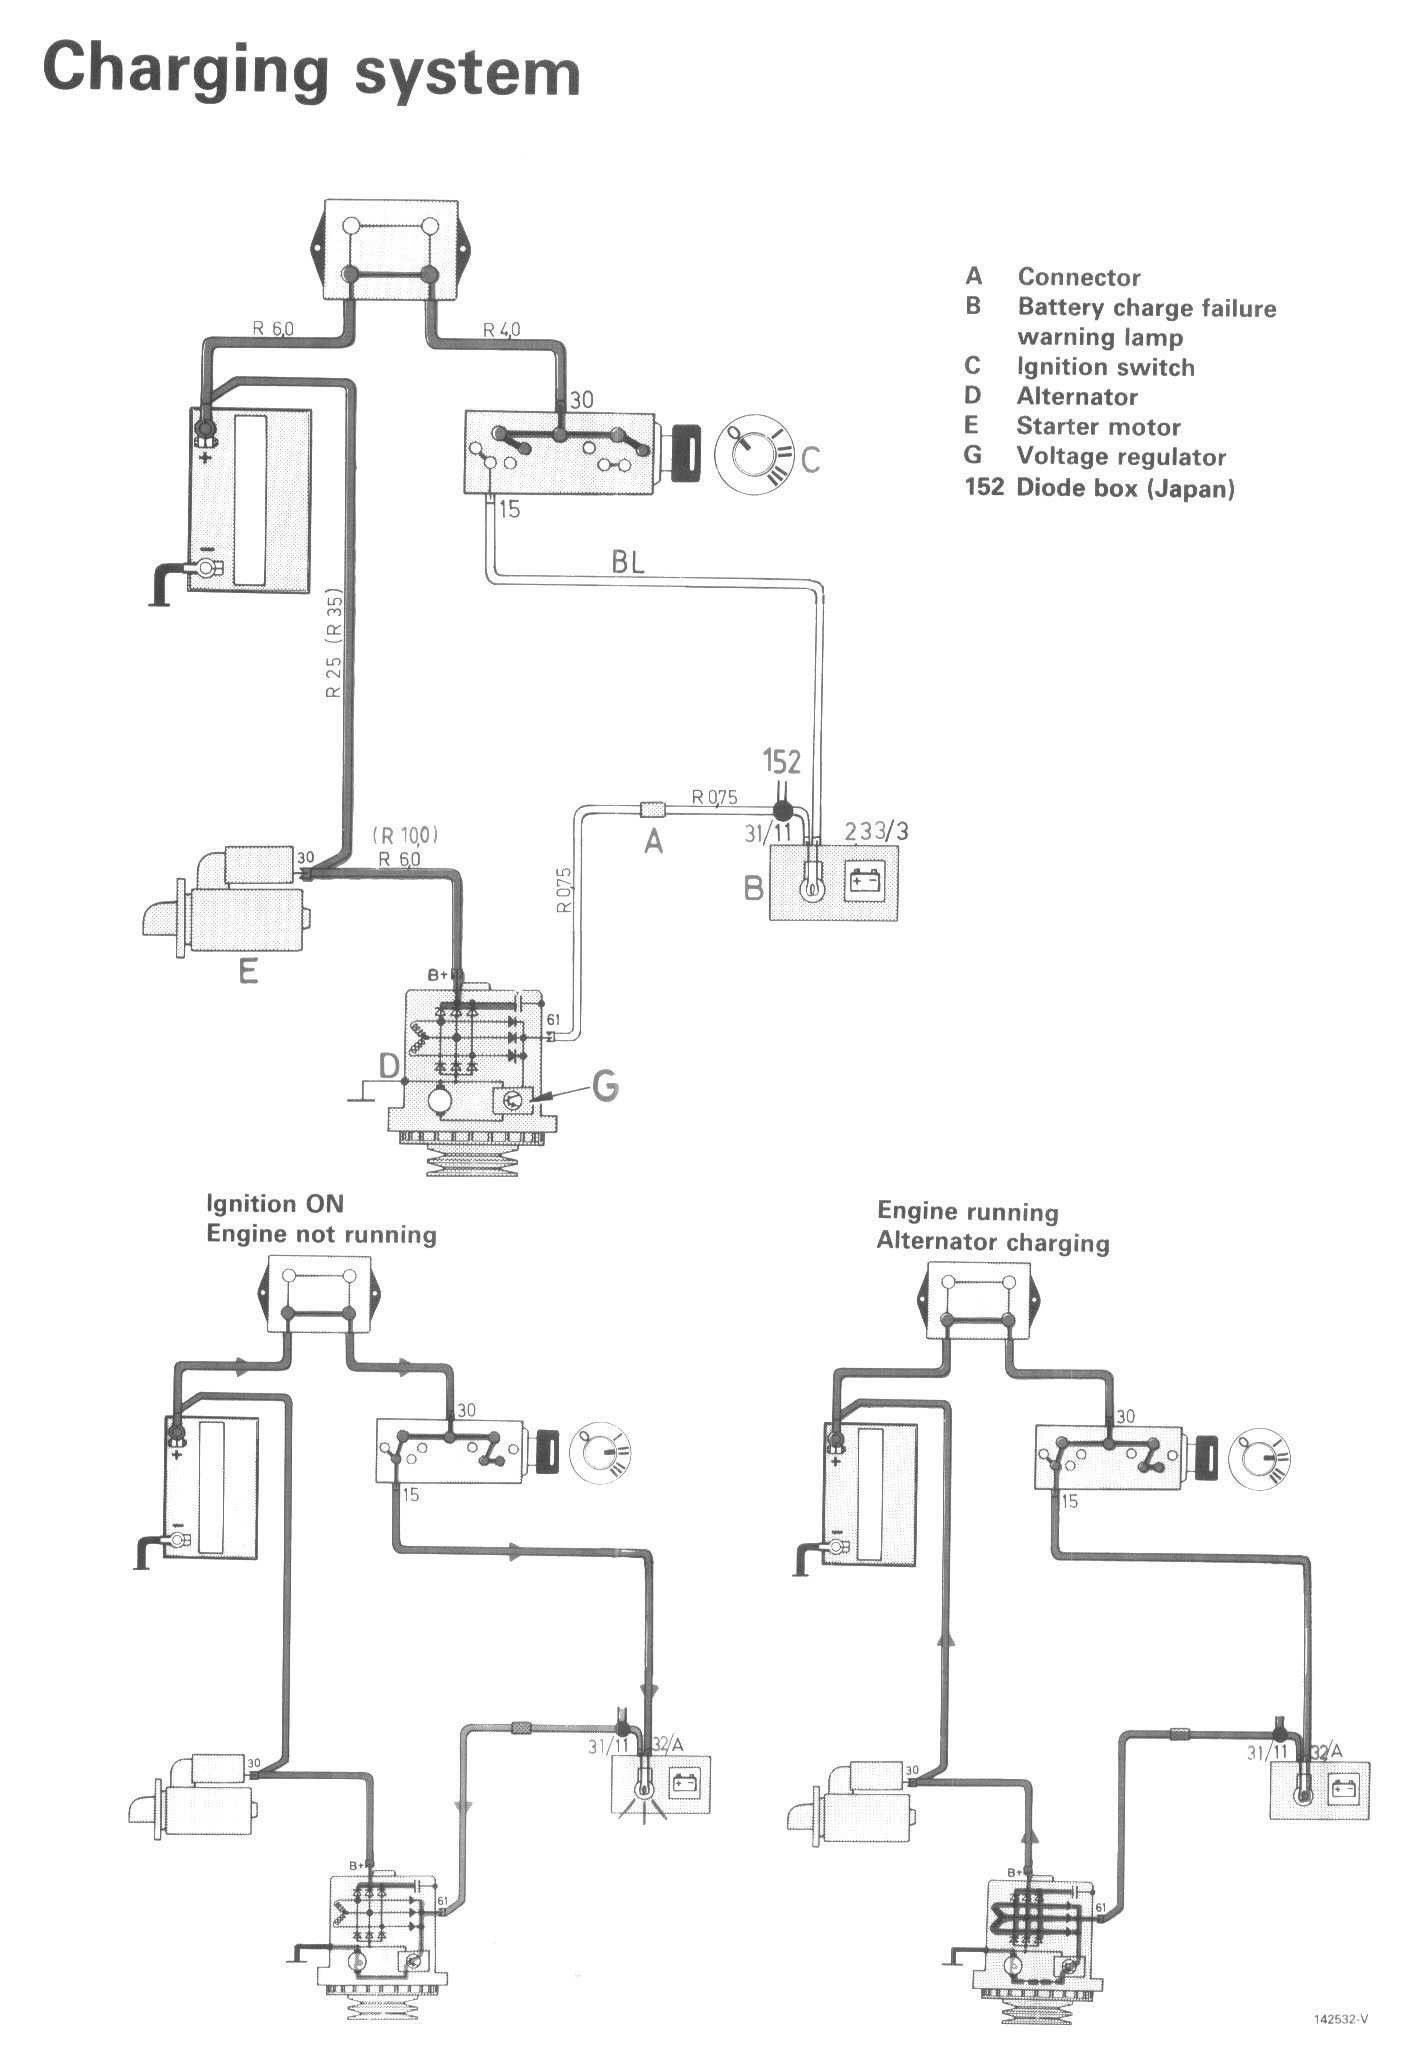 volvo penta outdrive wiring diagram 2 sx parts | domainadvice org